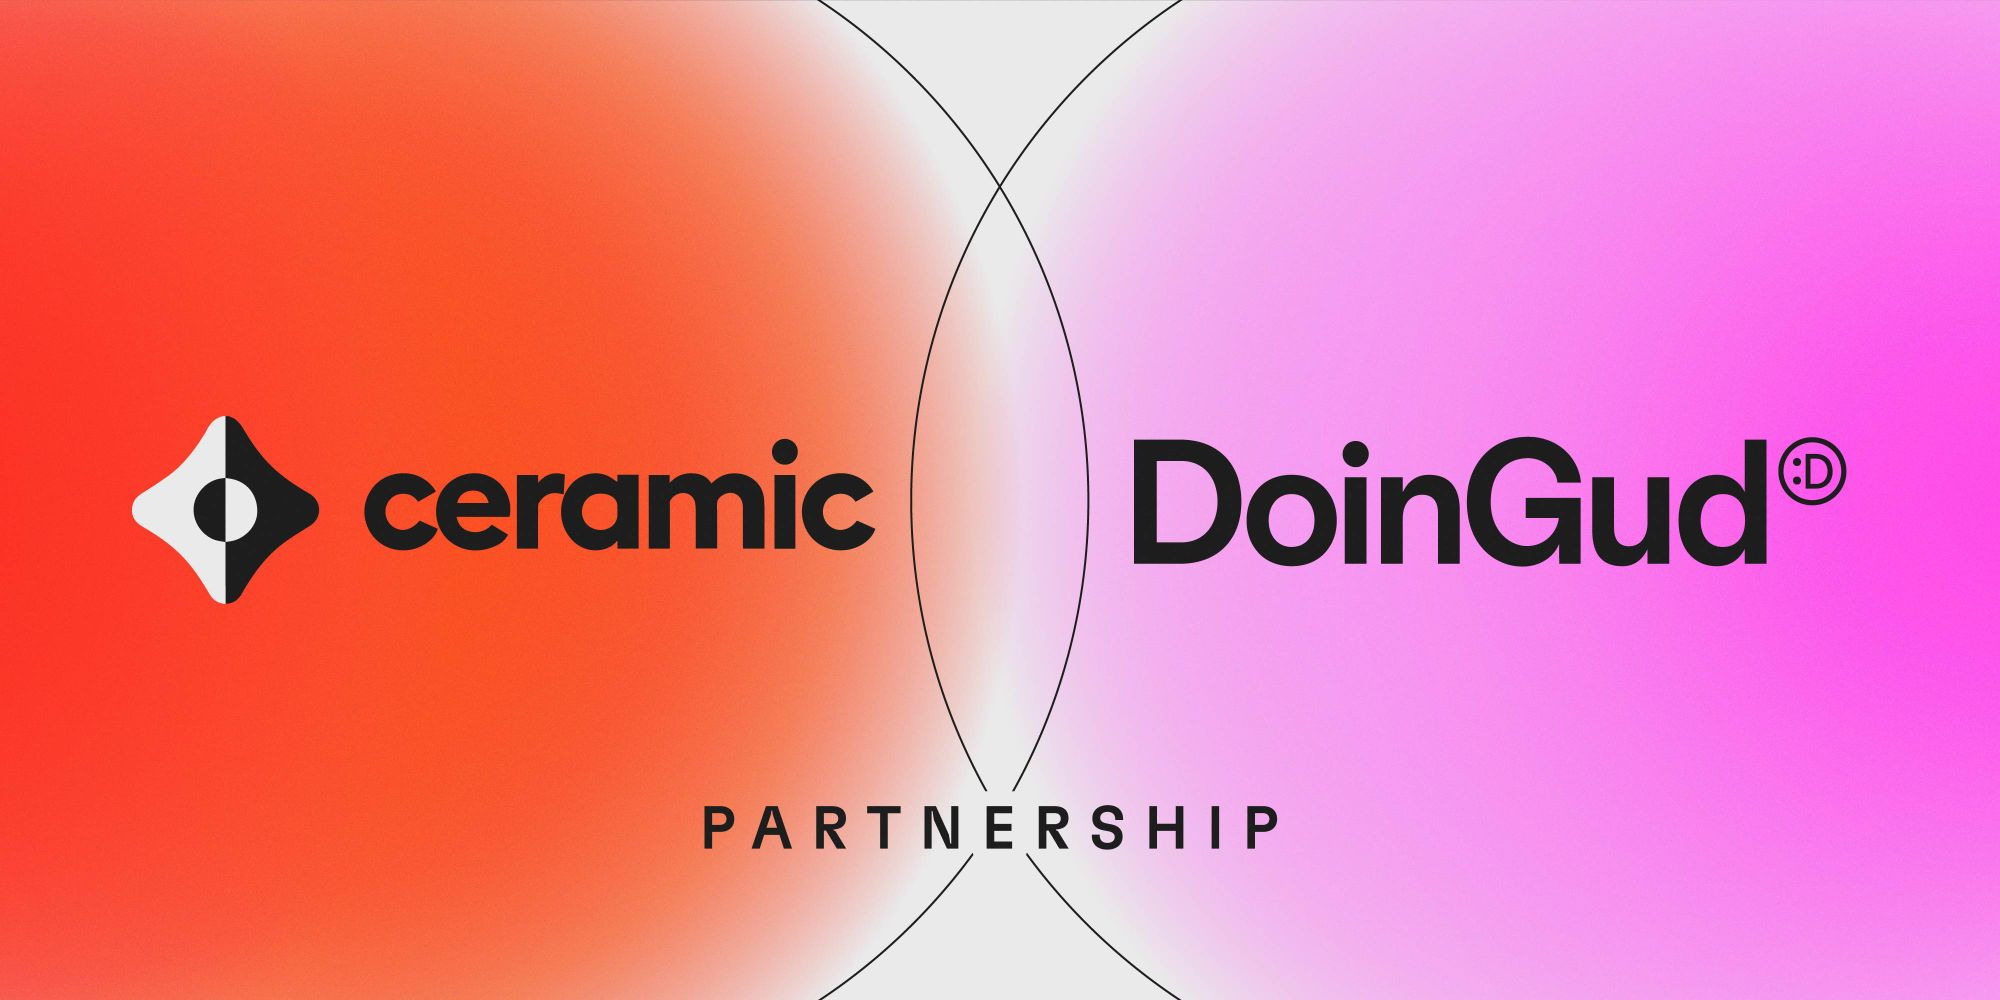 DoinGud Partners with Ceramic to Enable Cross-chain Profiles